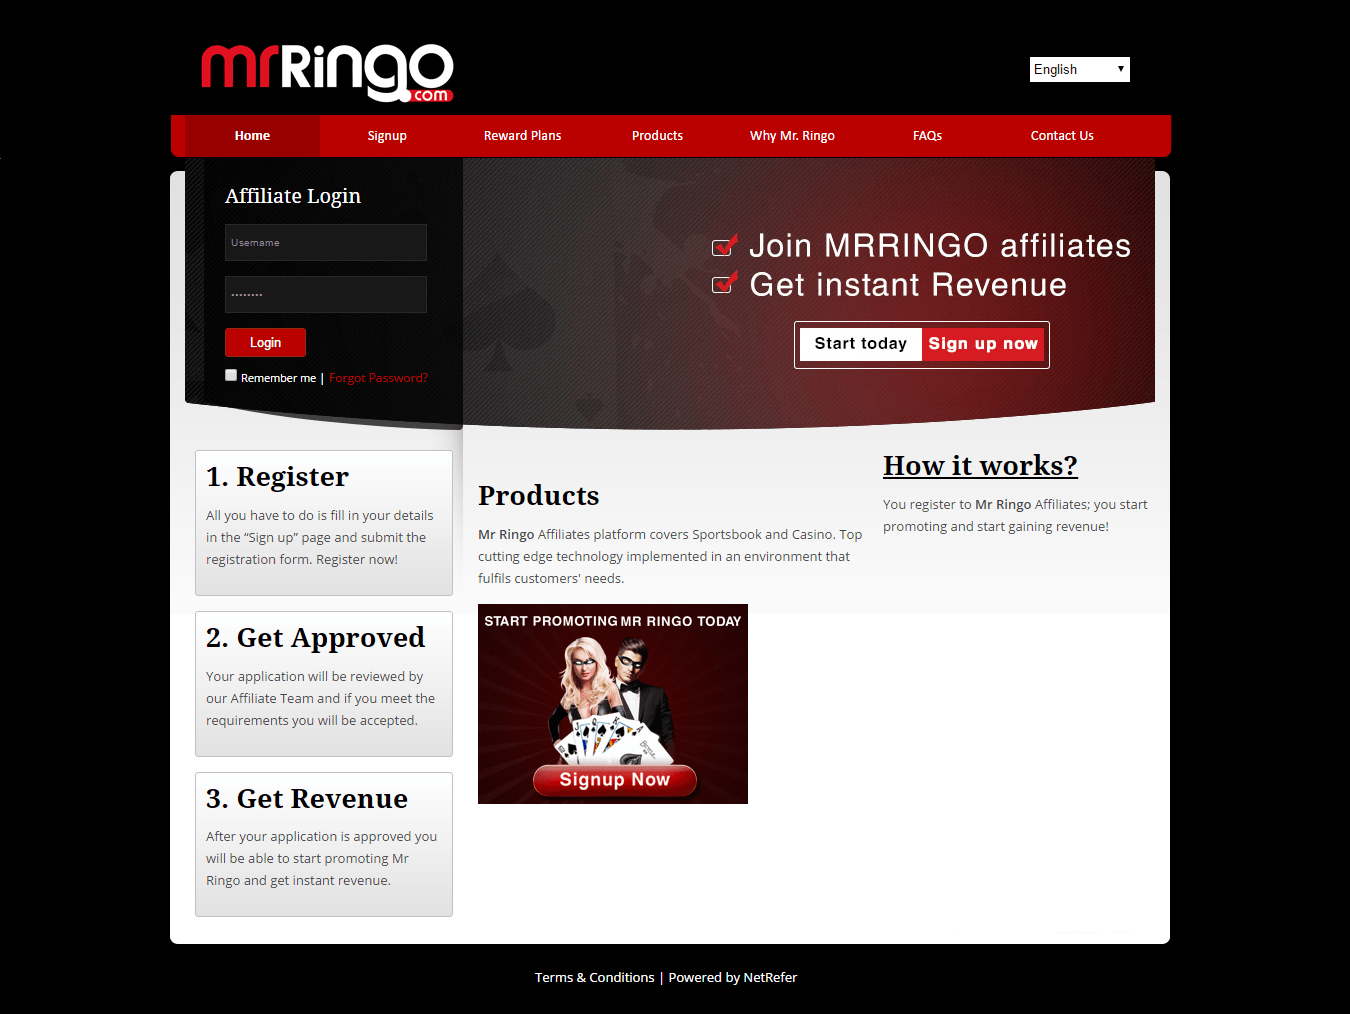 Mr. Ringo Affiliates website